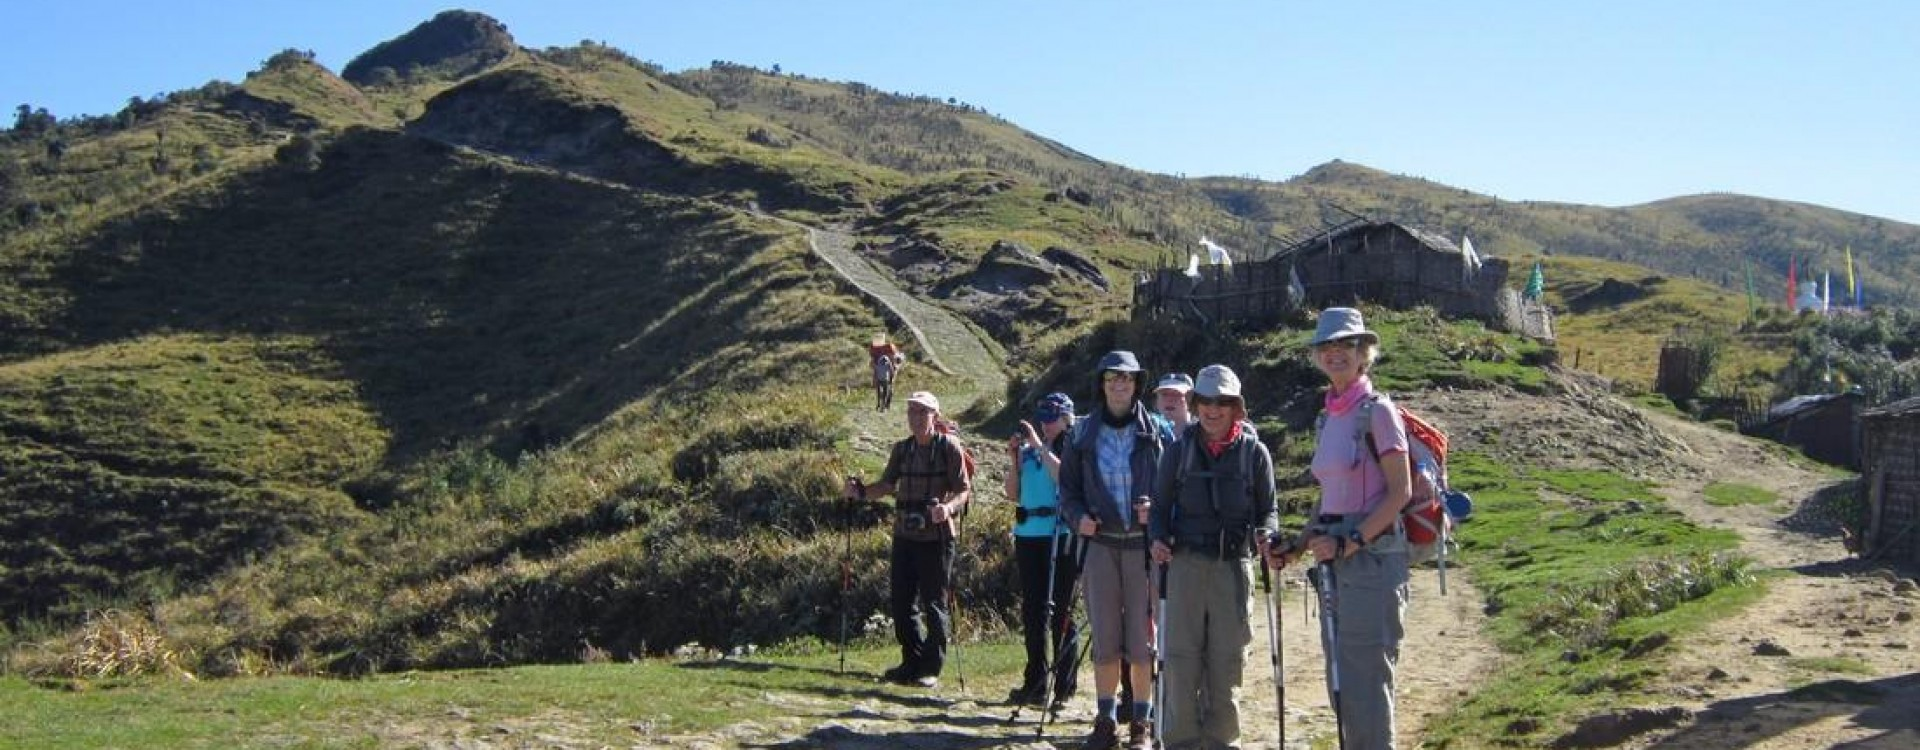 Trekking in India, Singalila Ridge